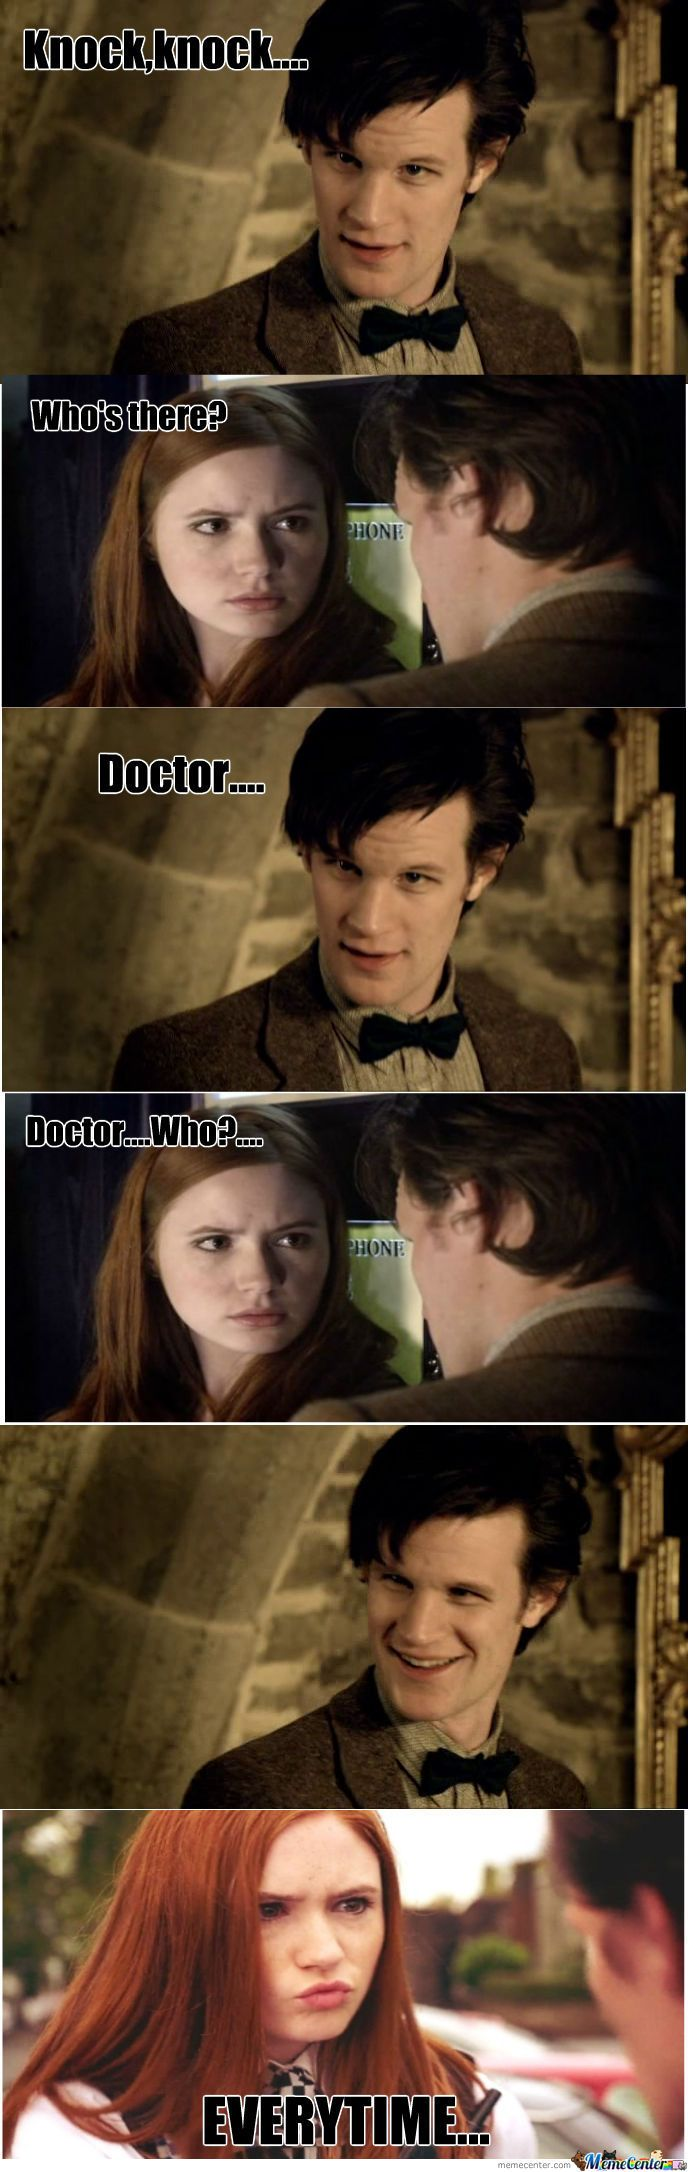 Doctor+Who+memes | Doctor Who - Meme Center